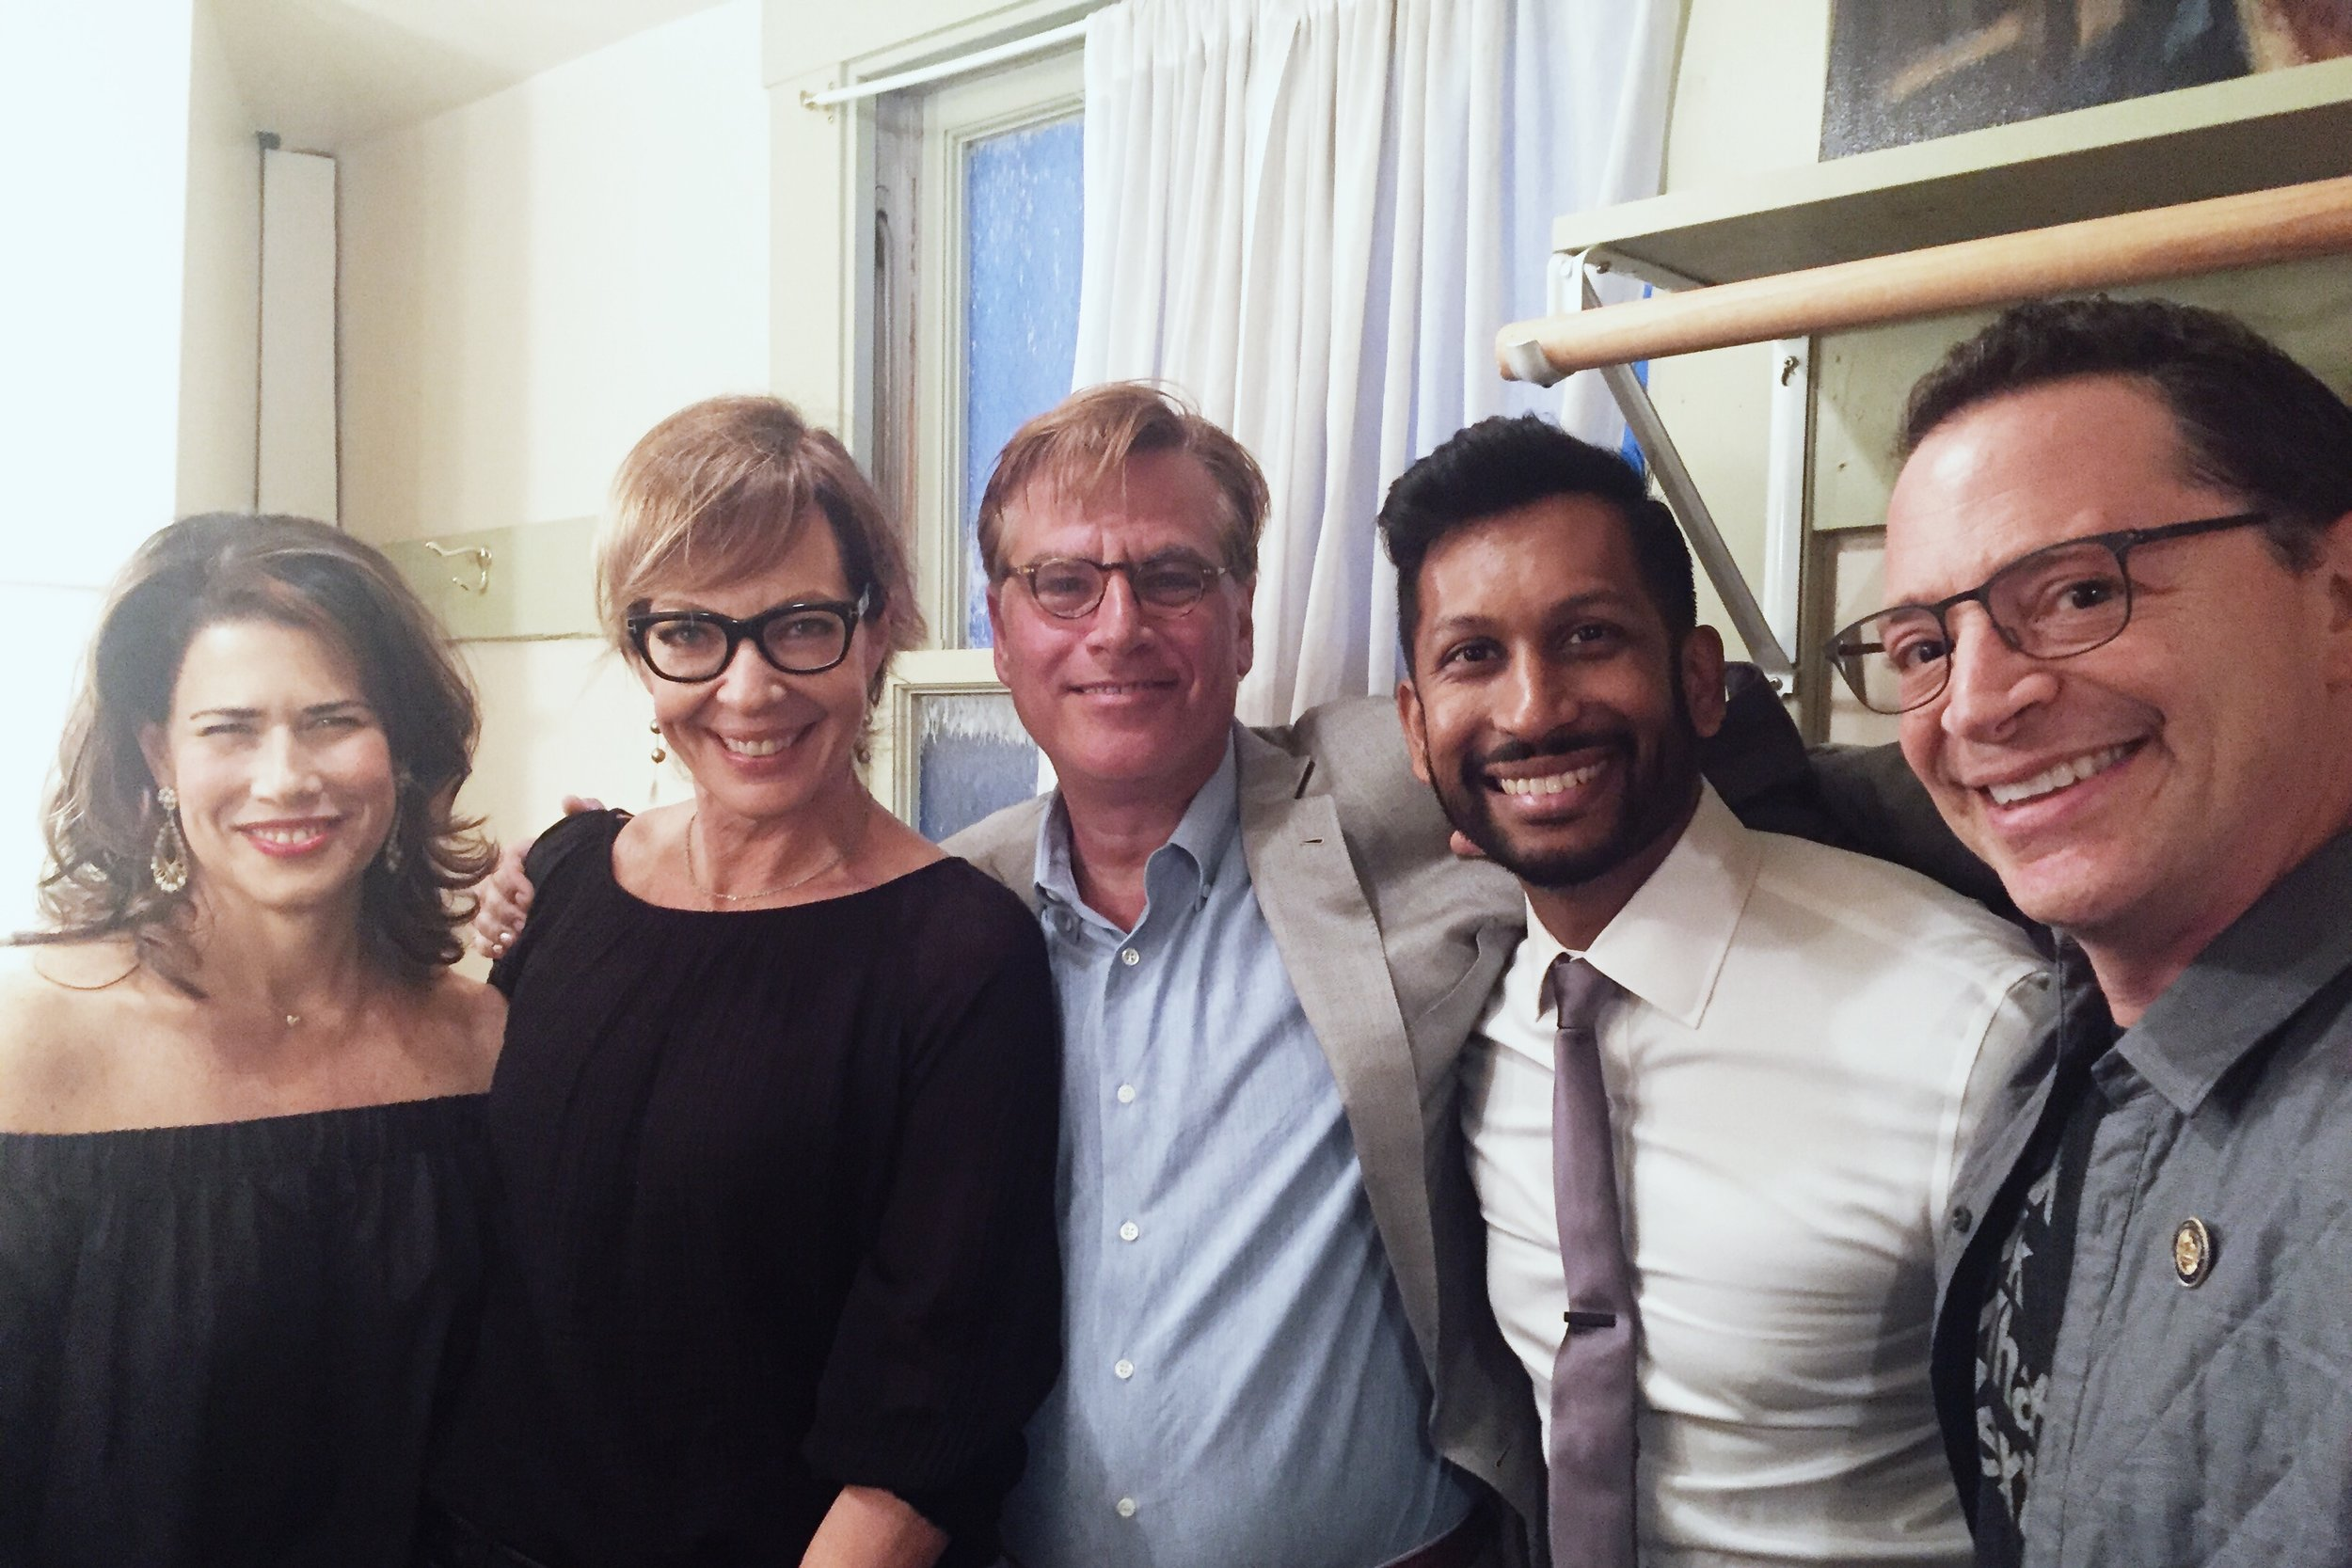 Melissa Fitzgerald, Allison Janney, Aaron Sorkin, Hrishi, and Josh, backstage at the Castro before our taping began.